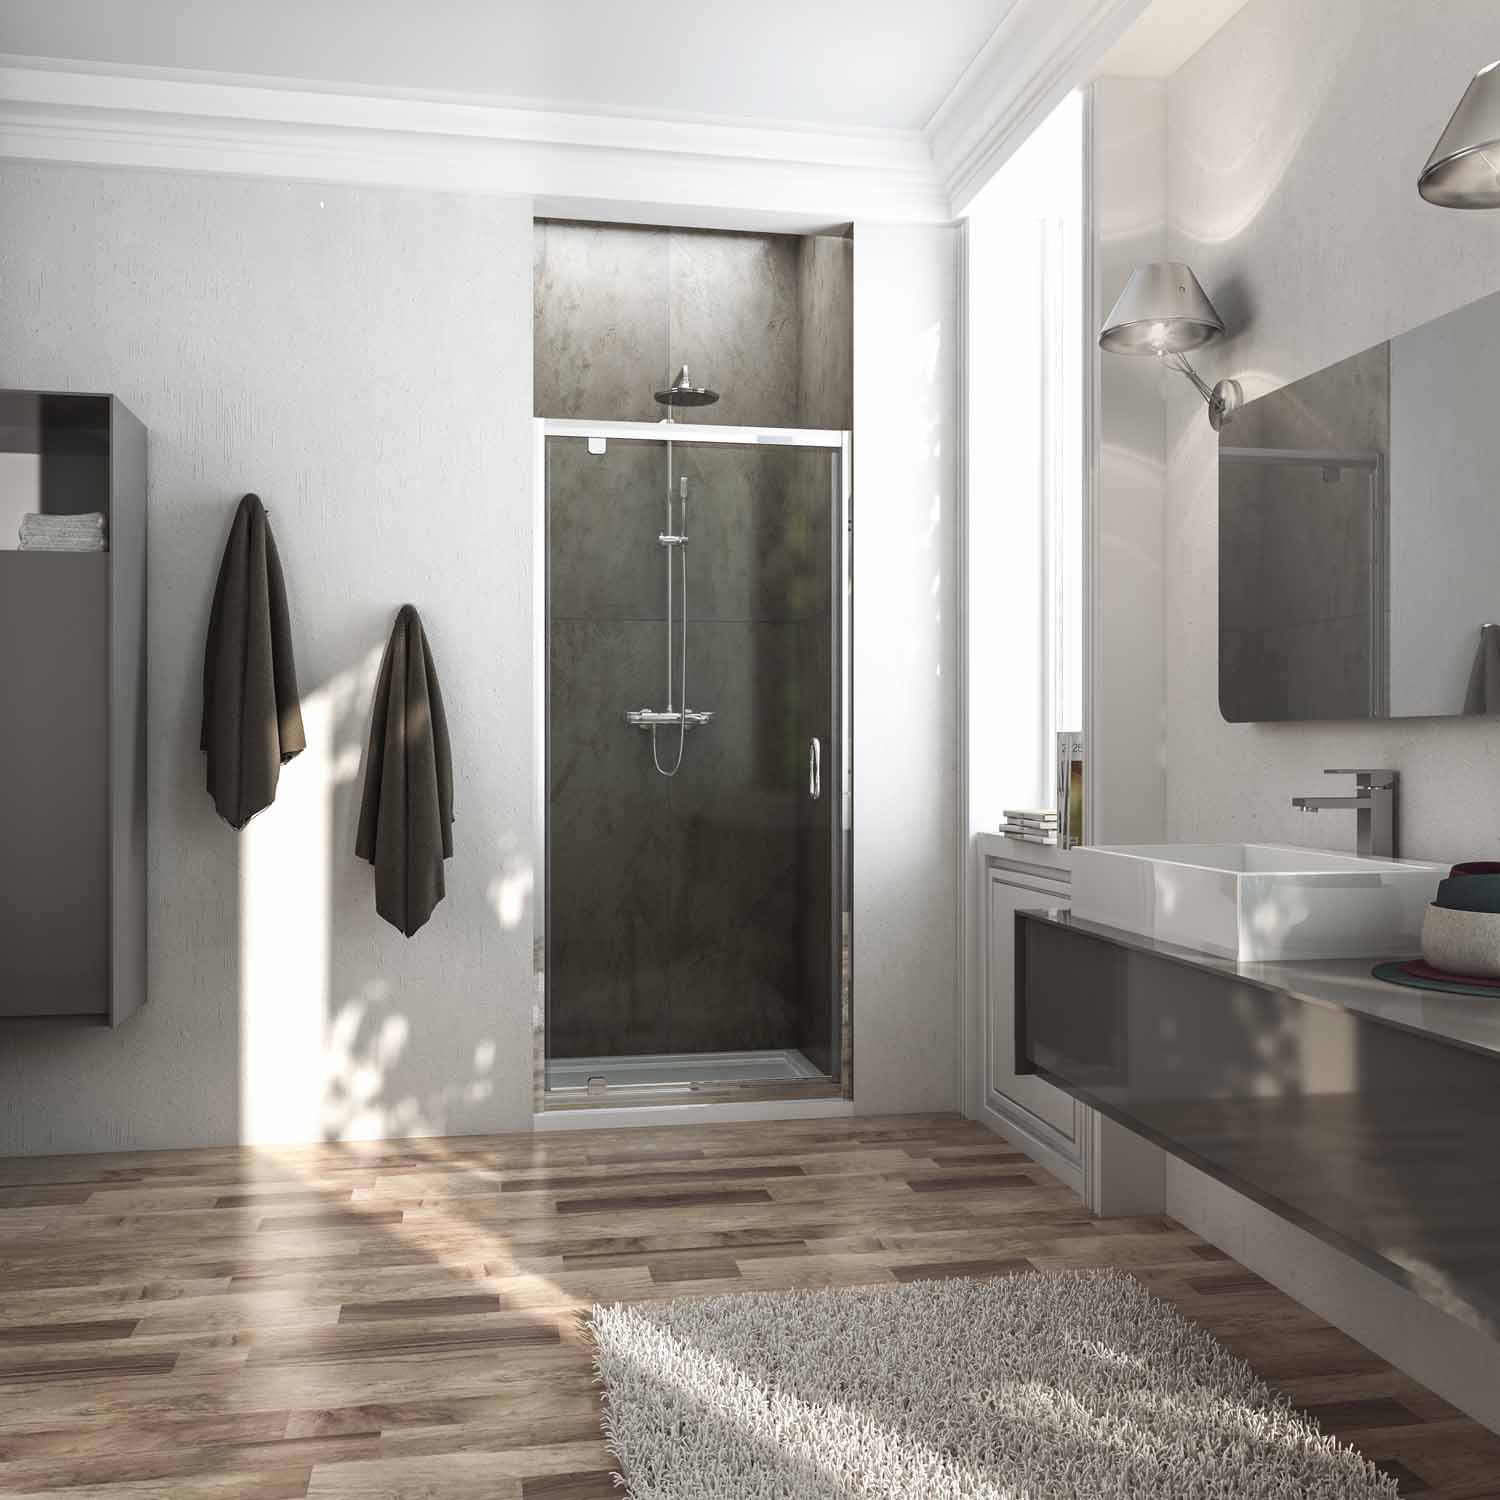 single-swing-shower-door-pr009-3_1543847429_661